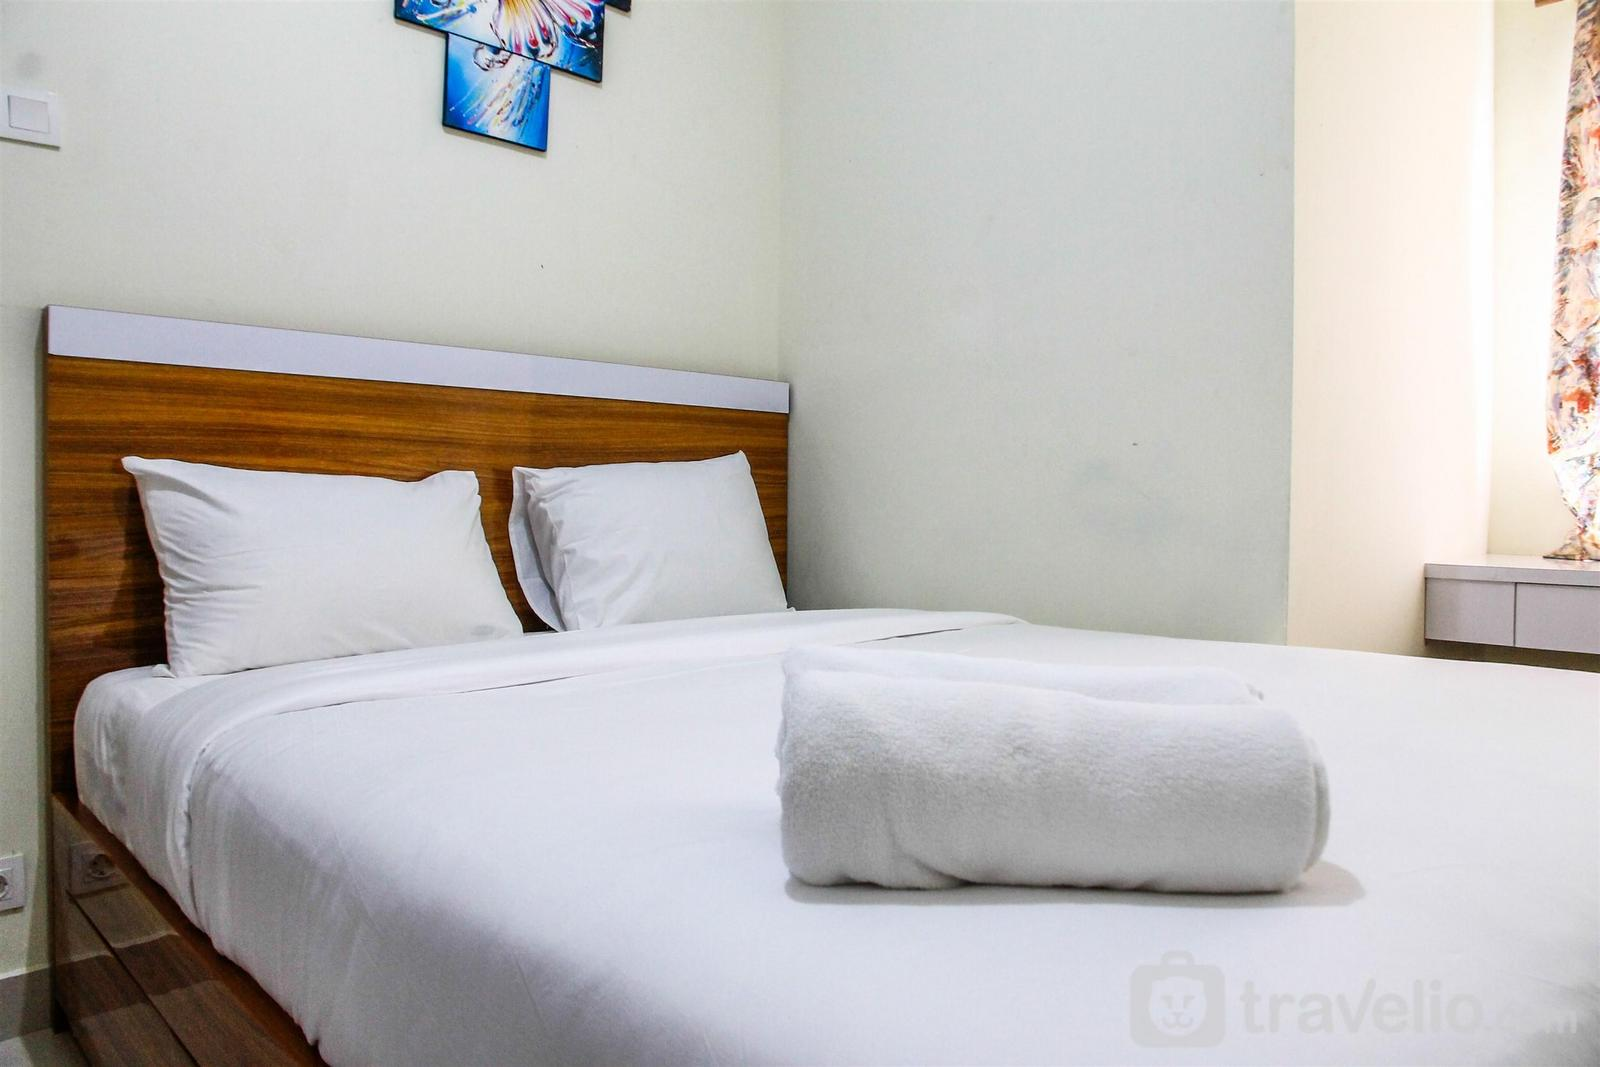 Grand Icon Caman  - Homey 2BR Apartment @ Grand Icon Caman By Travelio